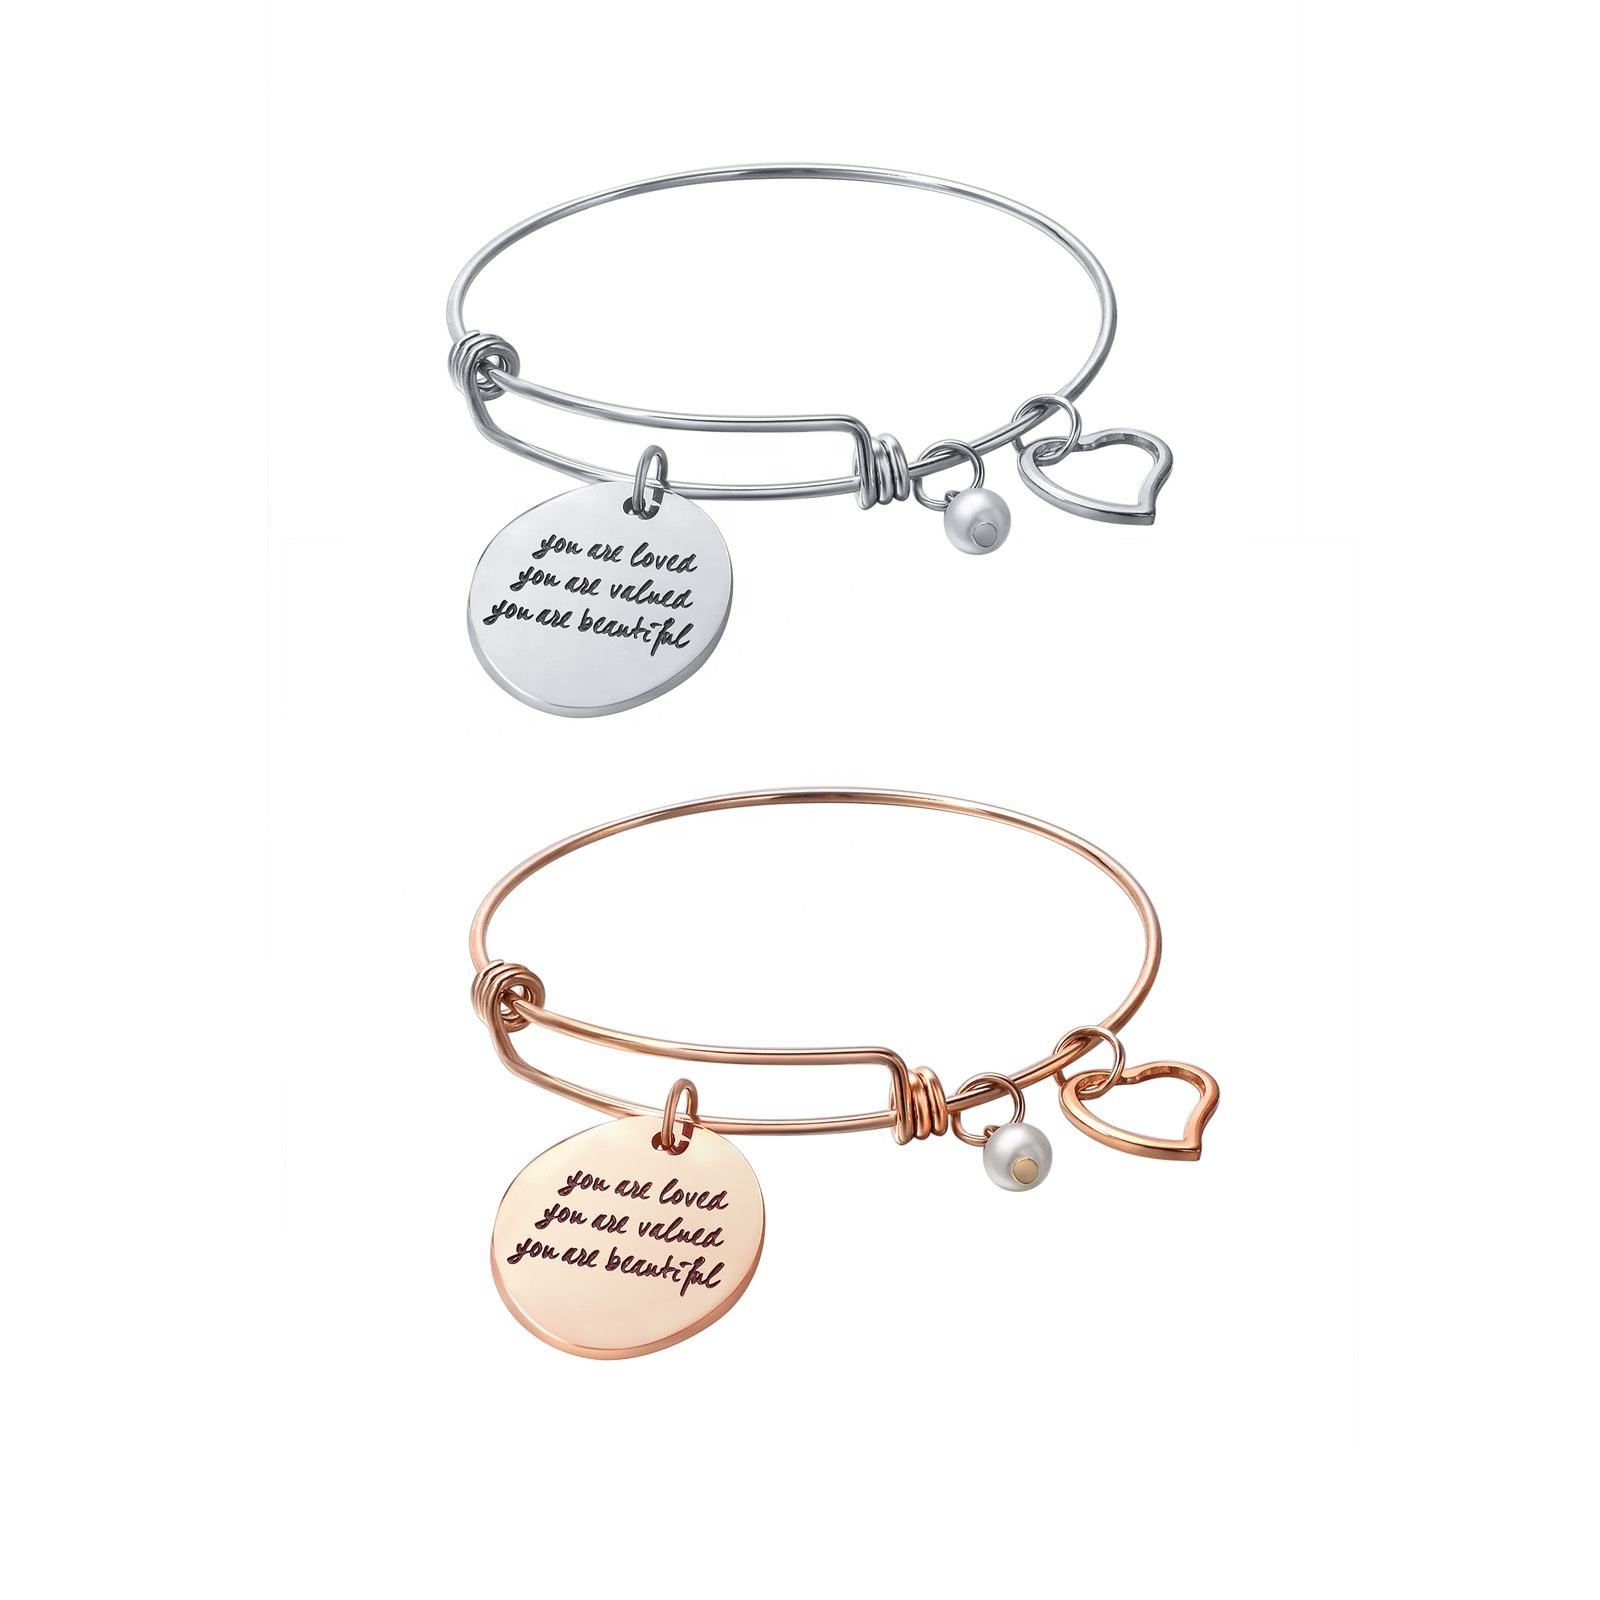 Loftily Jewelry you are loved, you are valued, you are beautiful Bangle Engrave Wholesale Stainless Steel Charm Cuff bracelets